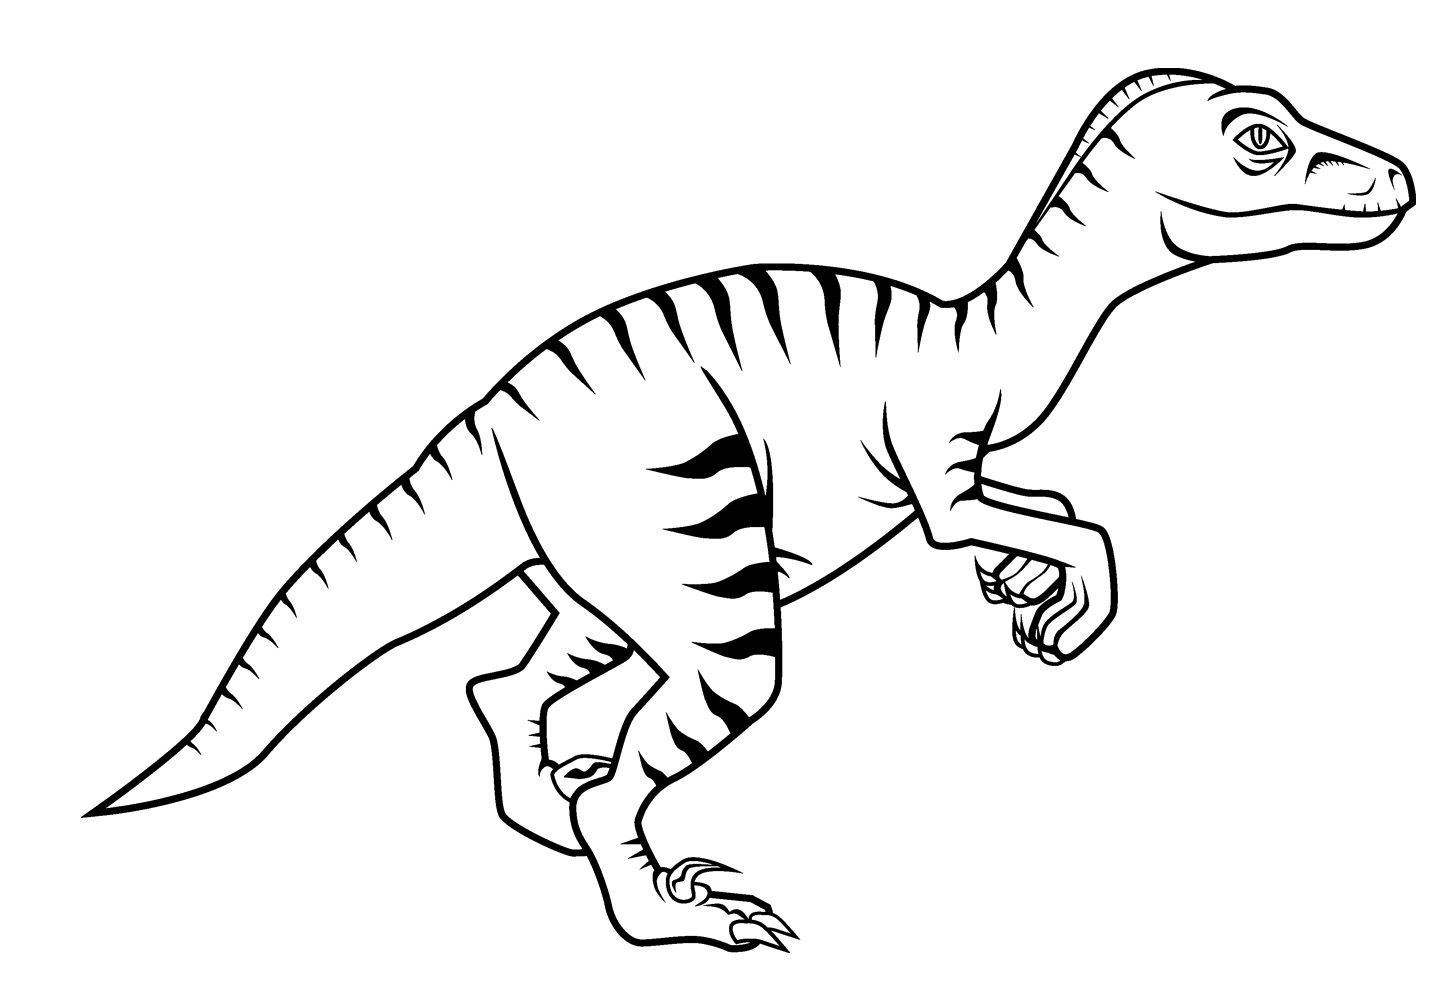 Real looking dinosaur coloring pages - Dinosaur Velociraptor Coloring Pages